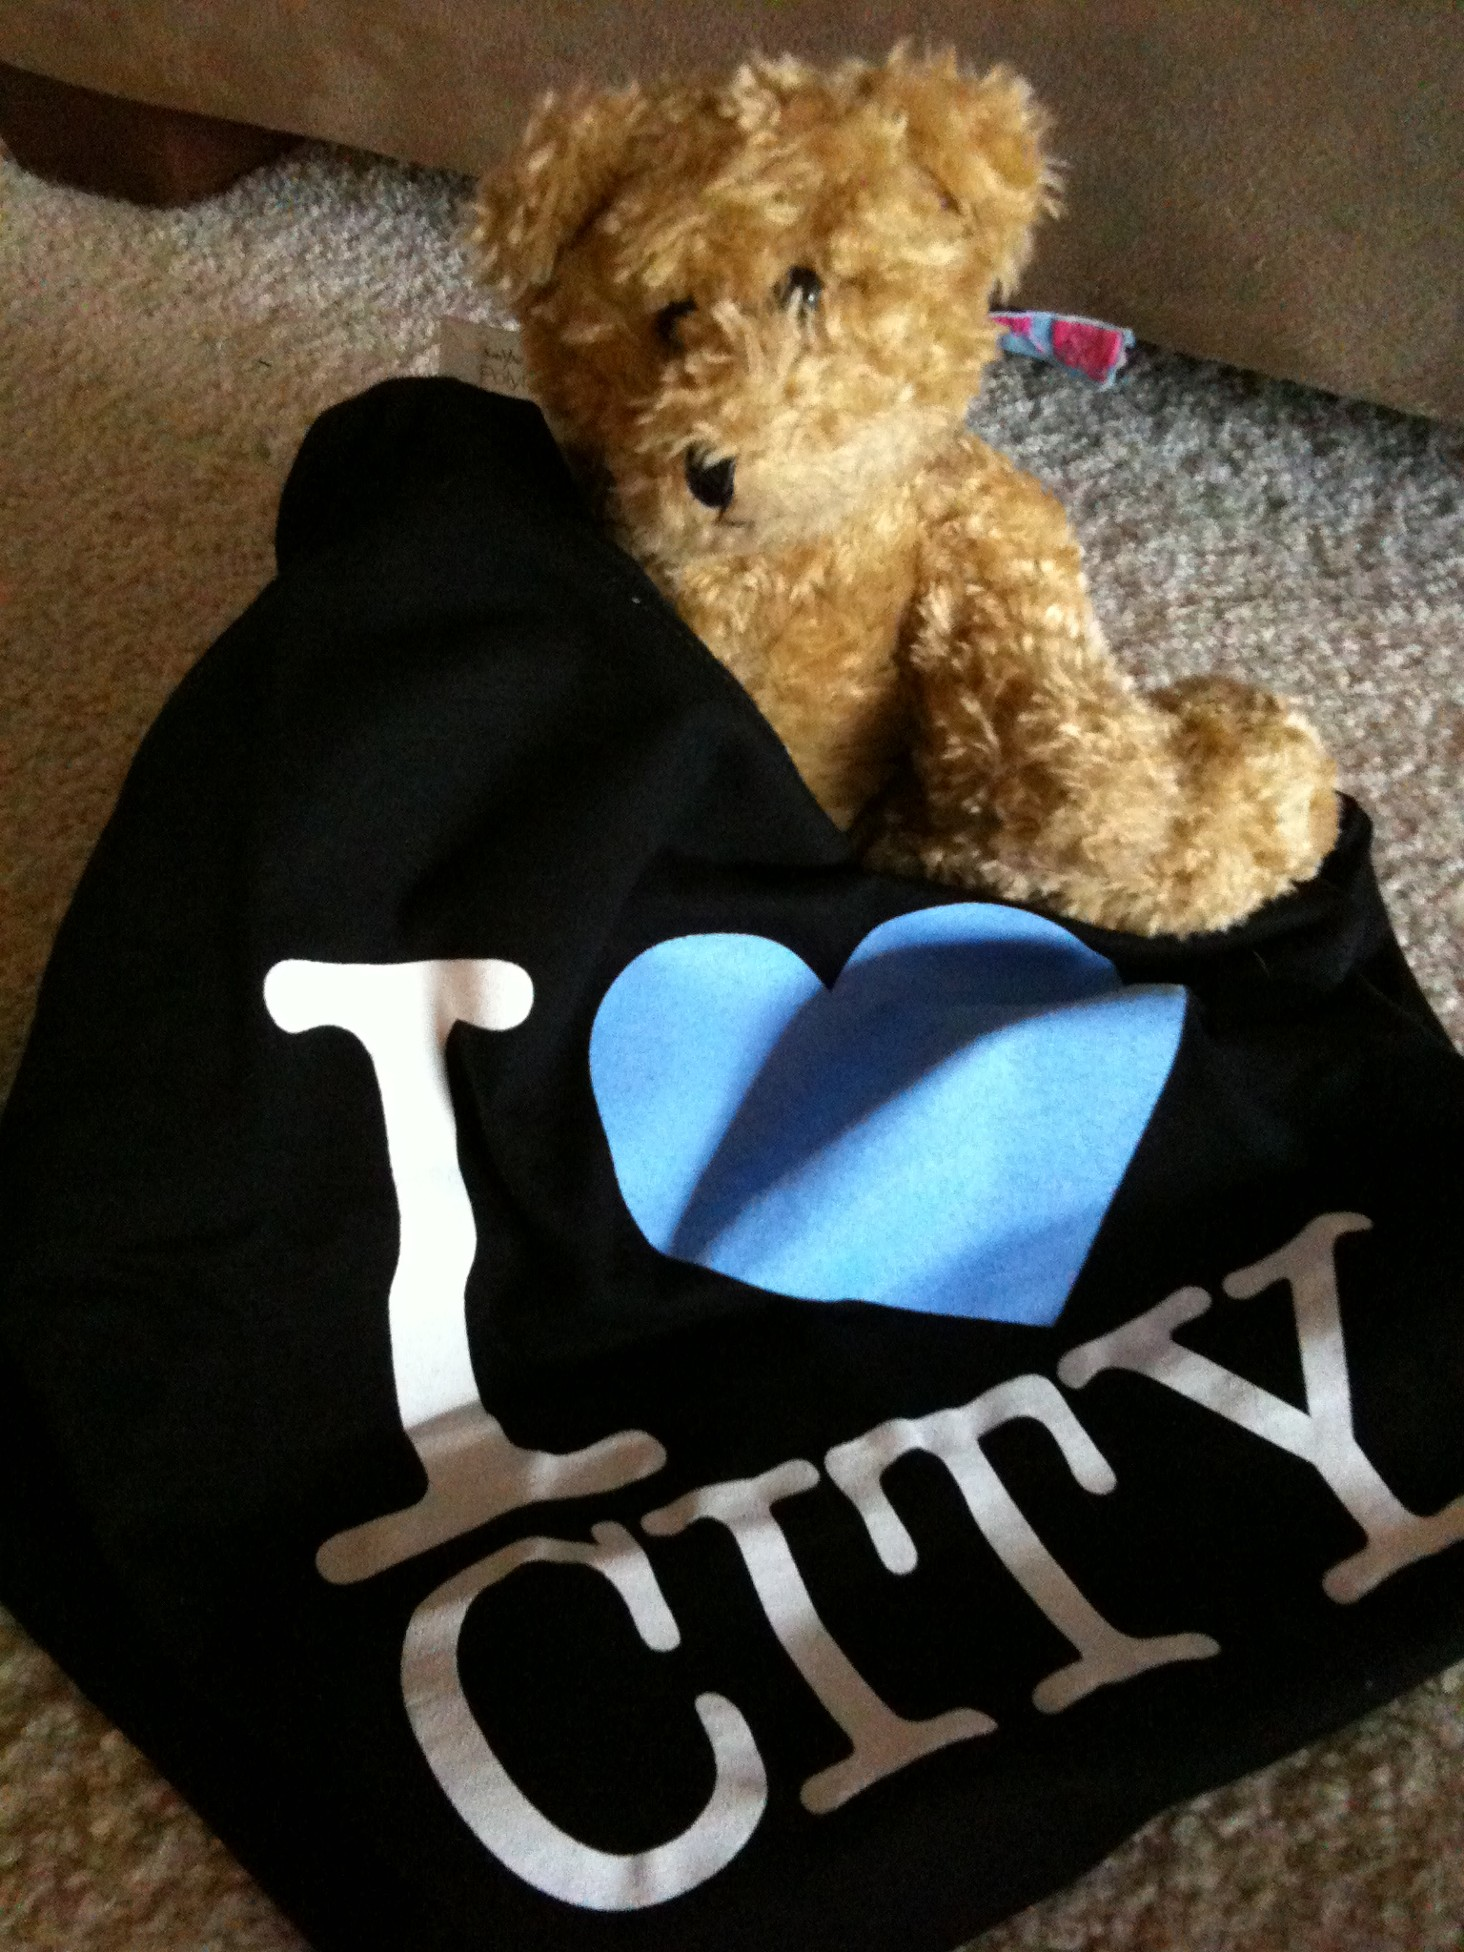 Lucy's Favourite Team - City!